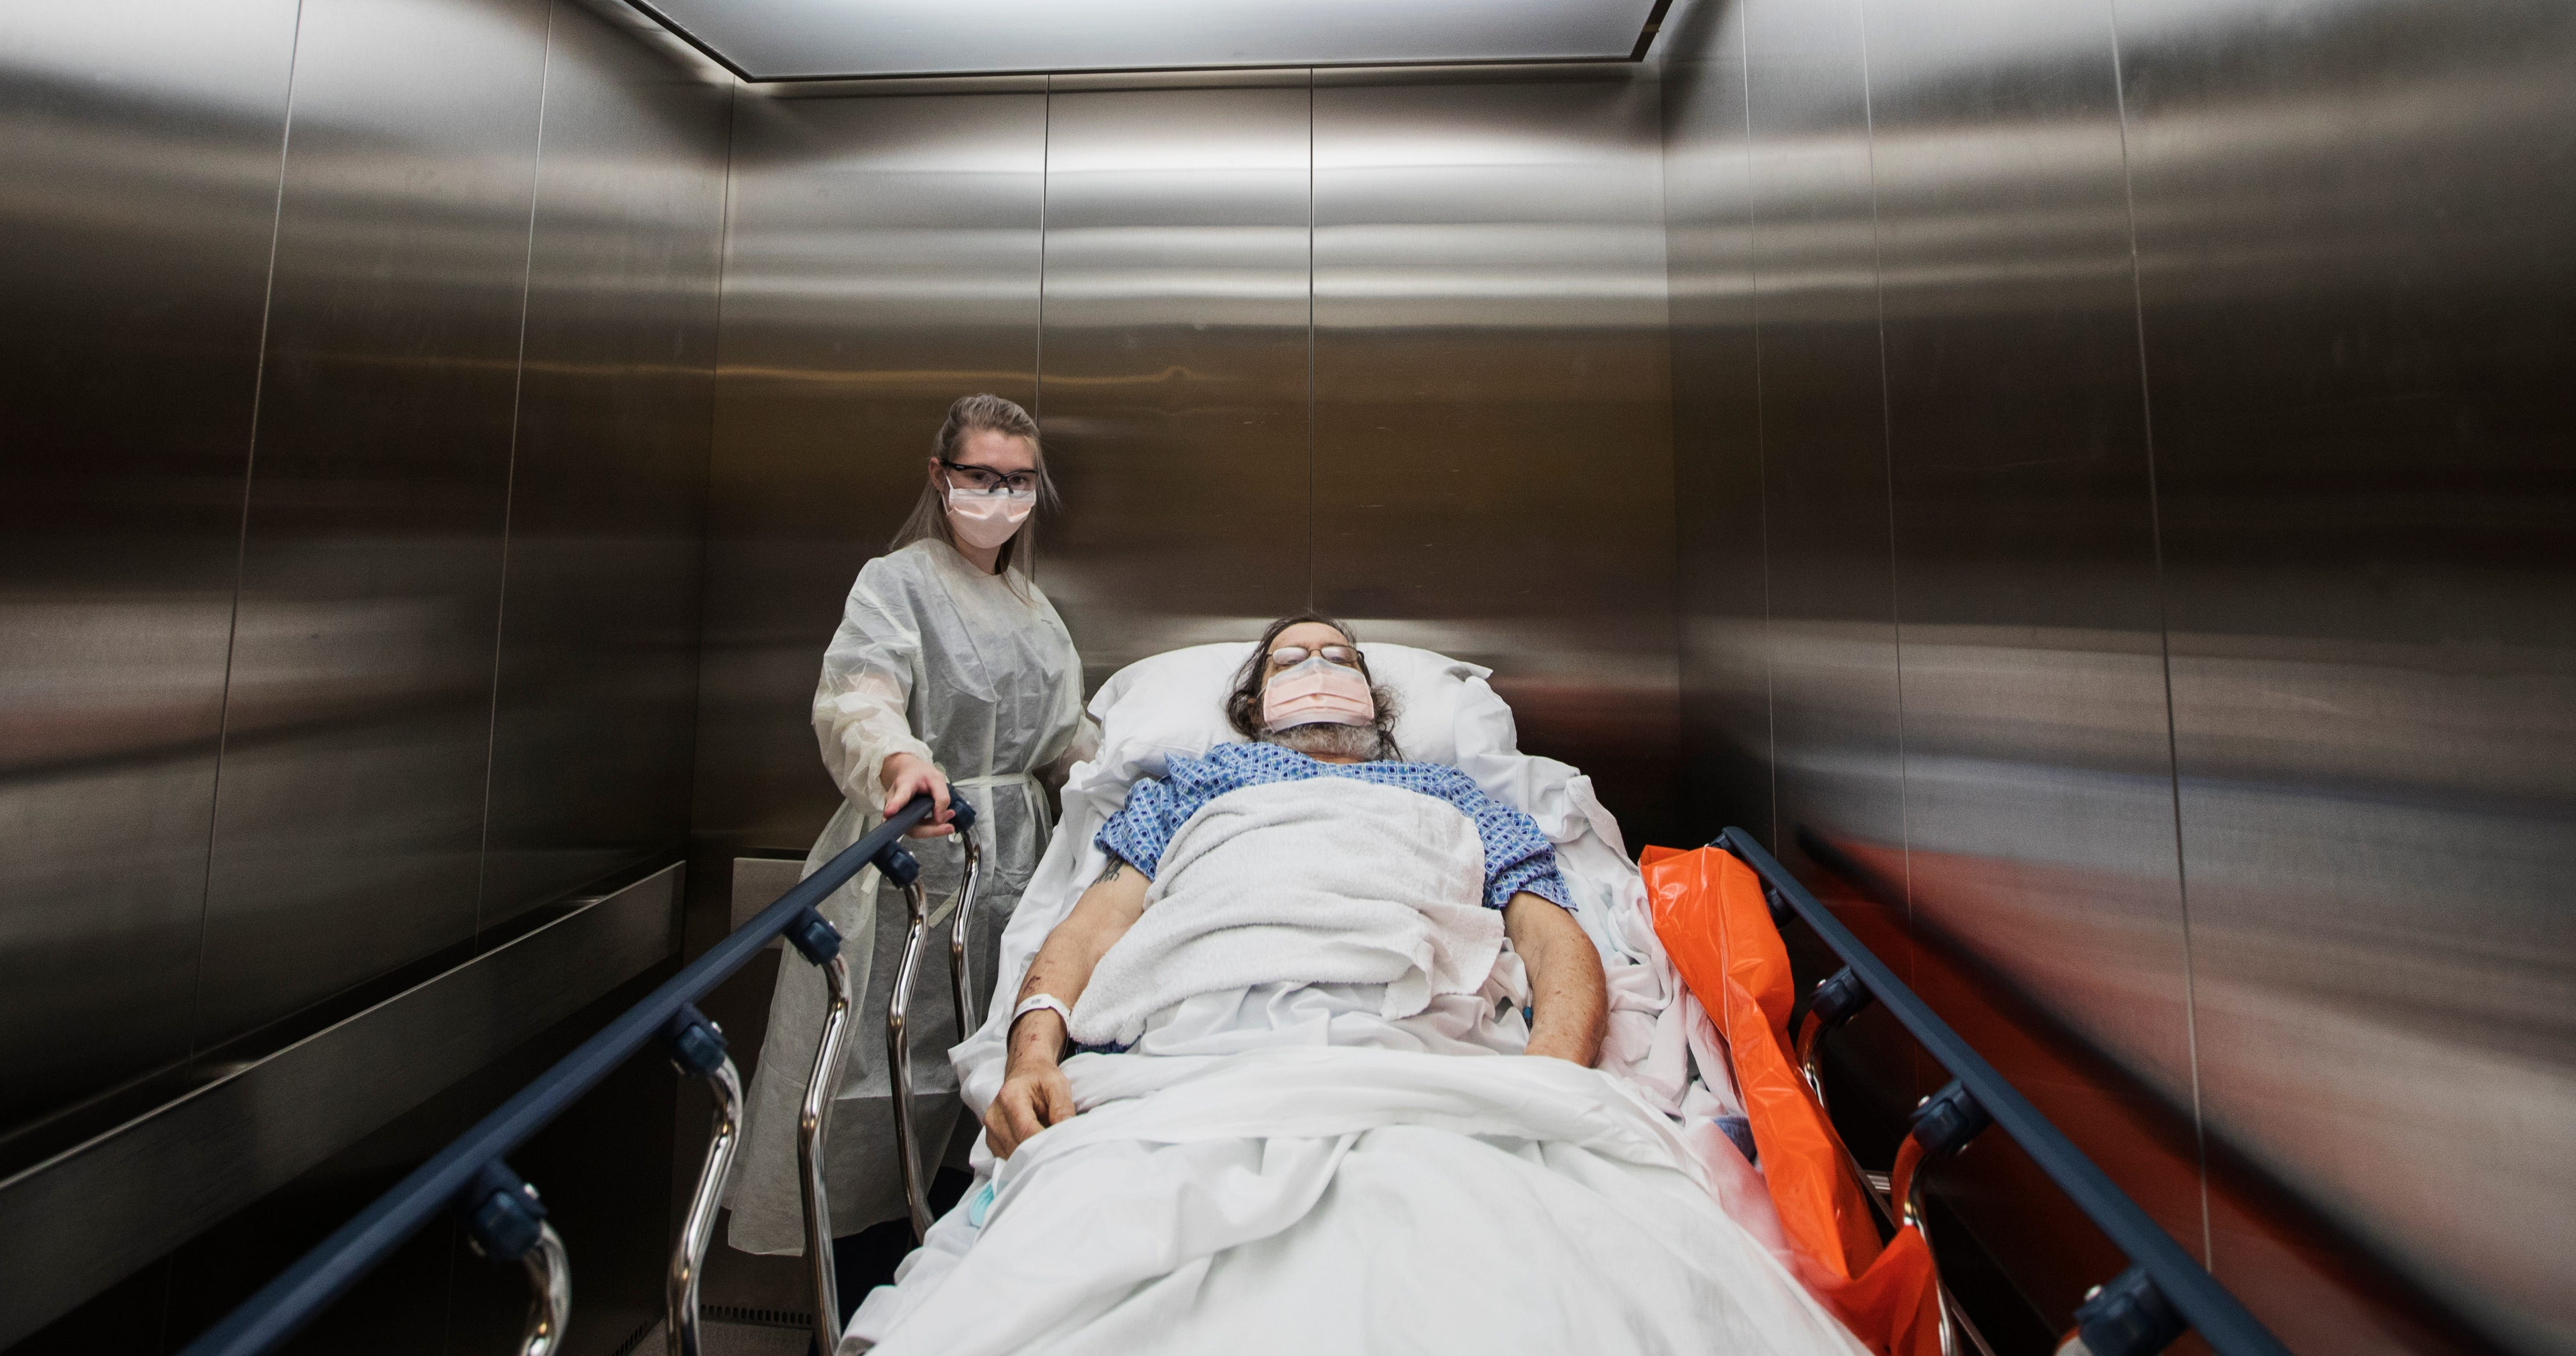 Maddie Dalby, 20, a transporter at Gulf Coast Medical Center, maneuvers a patient in an elevator as they make their way back to his designated room, Wednesday, April 29, 2020.